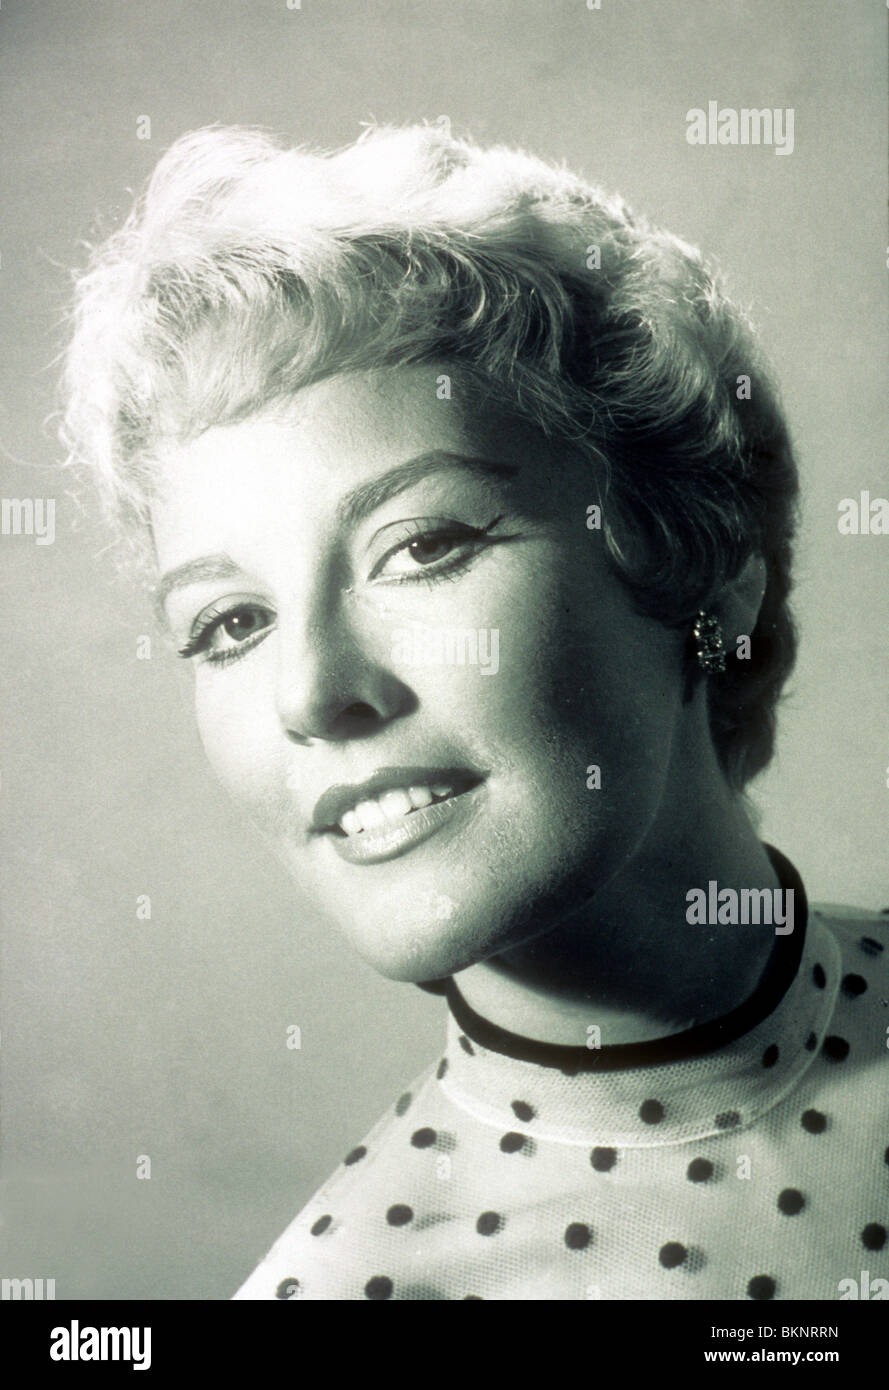 PETULA CLARK PORTRAIT Stock Photo